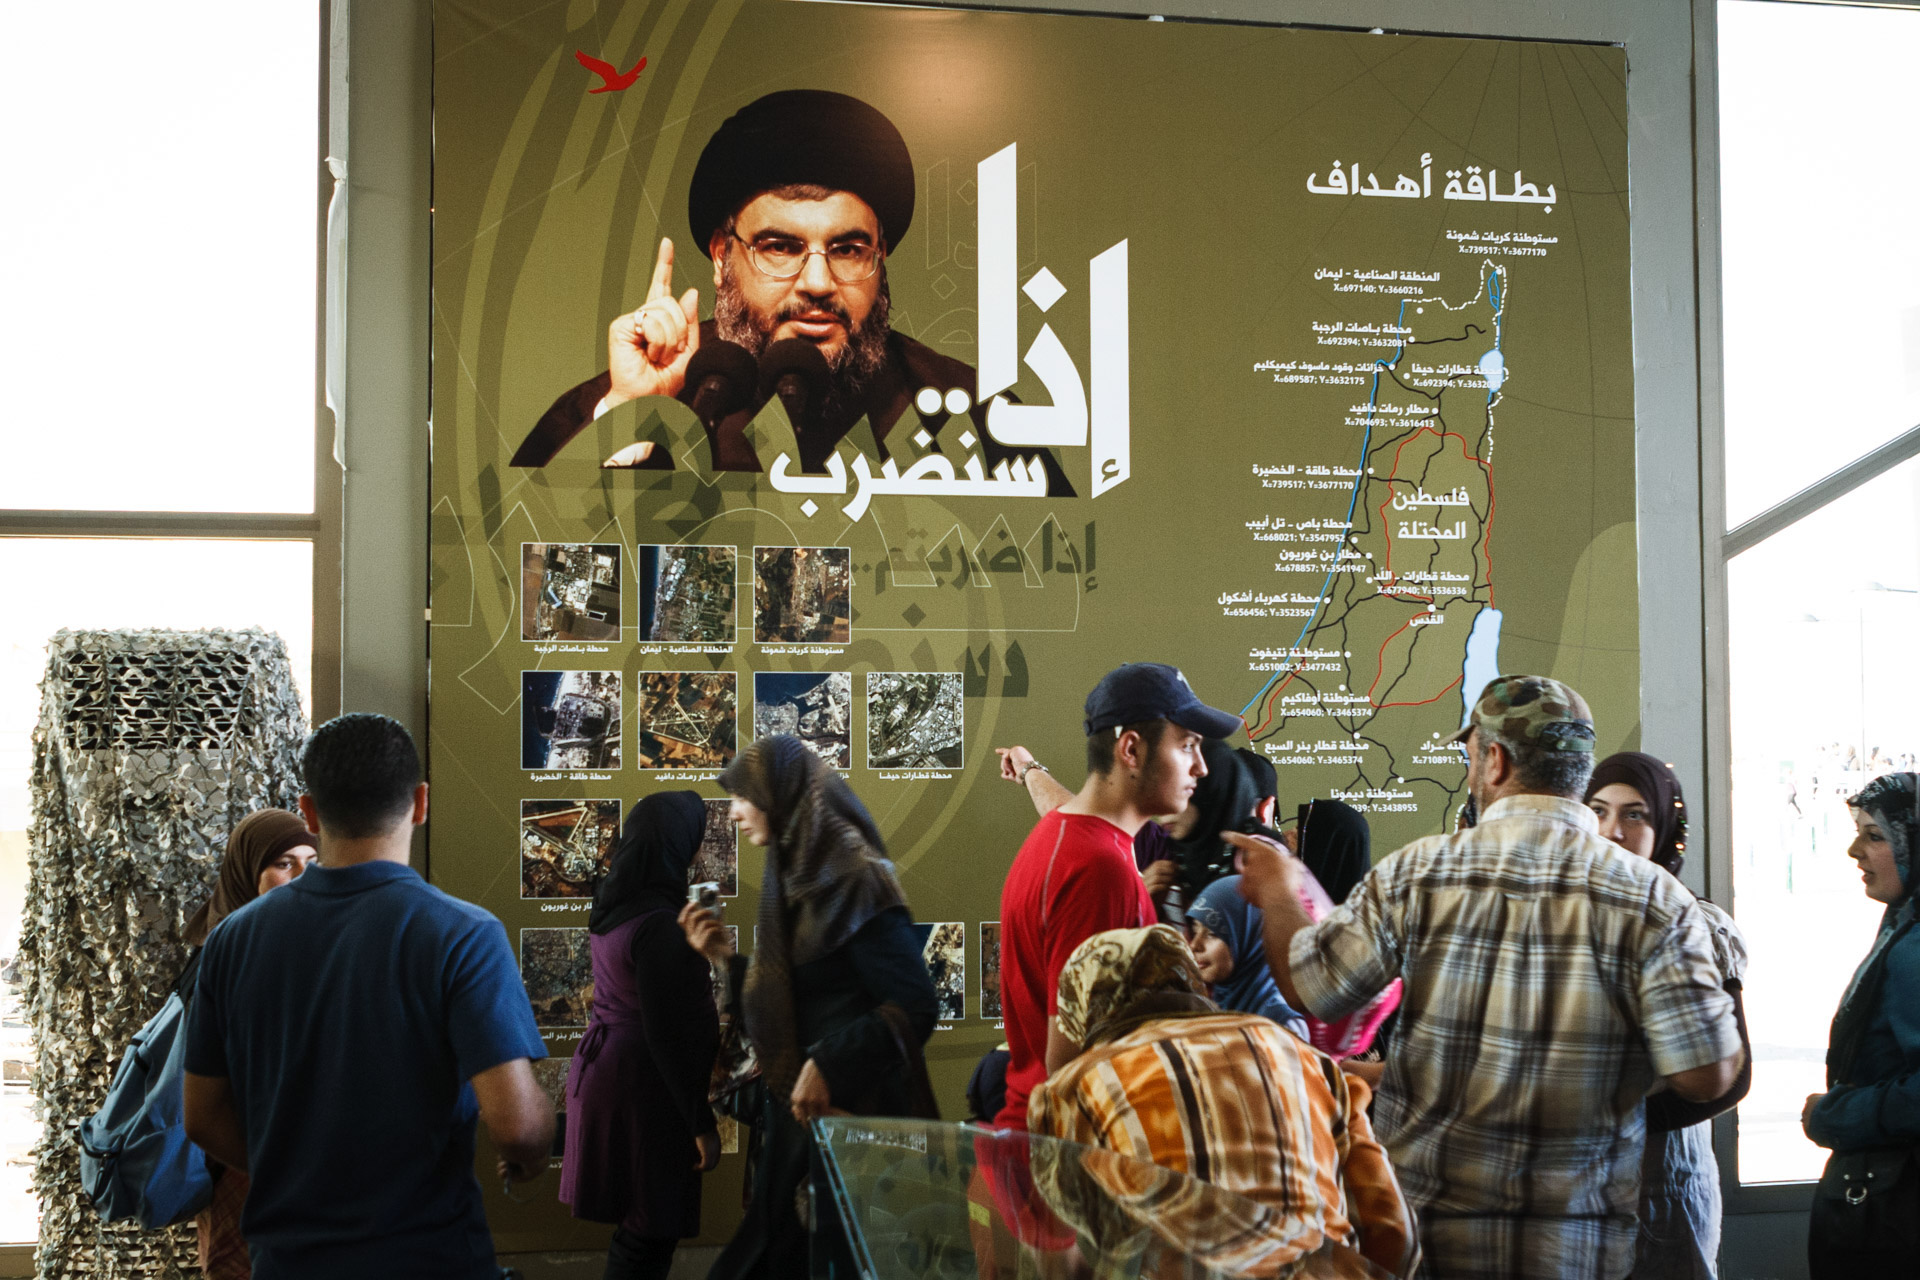 Secretary general of Hezbollah, Sayyed Hassan Nasrallah, looks at visitors inside the museum's main hall. The board explains, how and where in Israel the party would retaliate, if Israel would attack Lebanon once again.